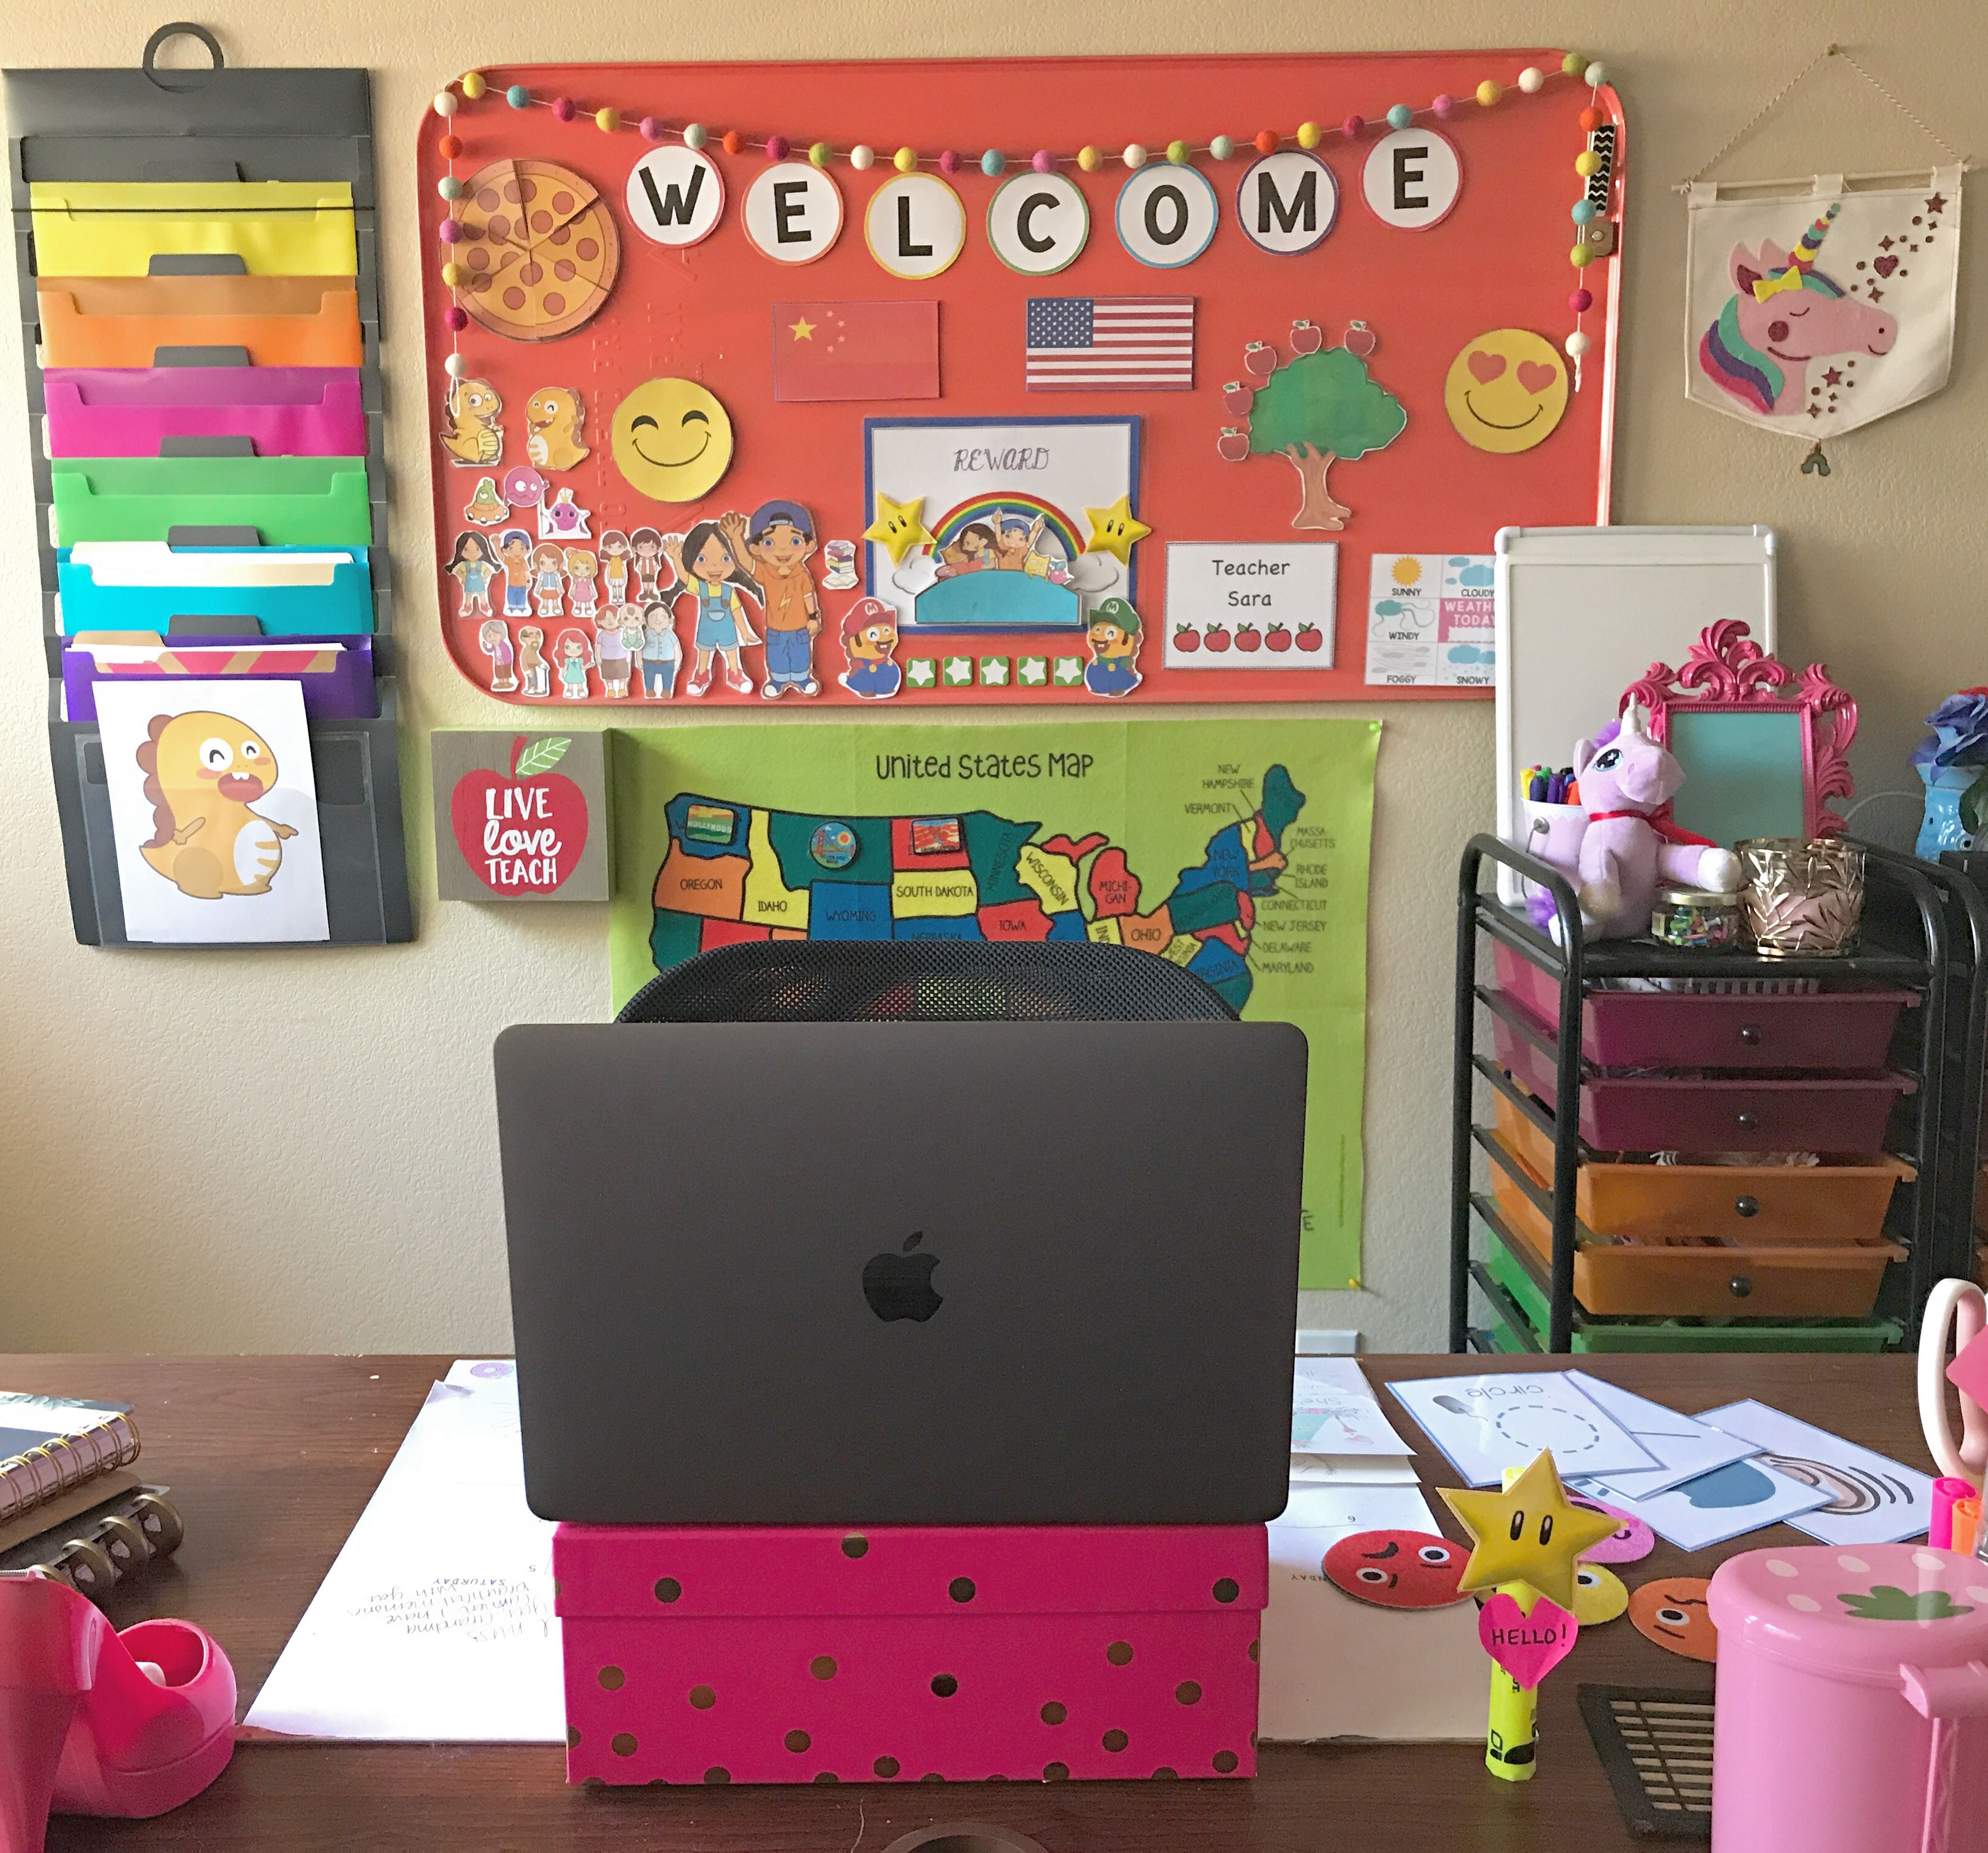 Free Esl Classroom Decorations ~ My vipkid classroom vipkidclassroom workfromhome